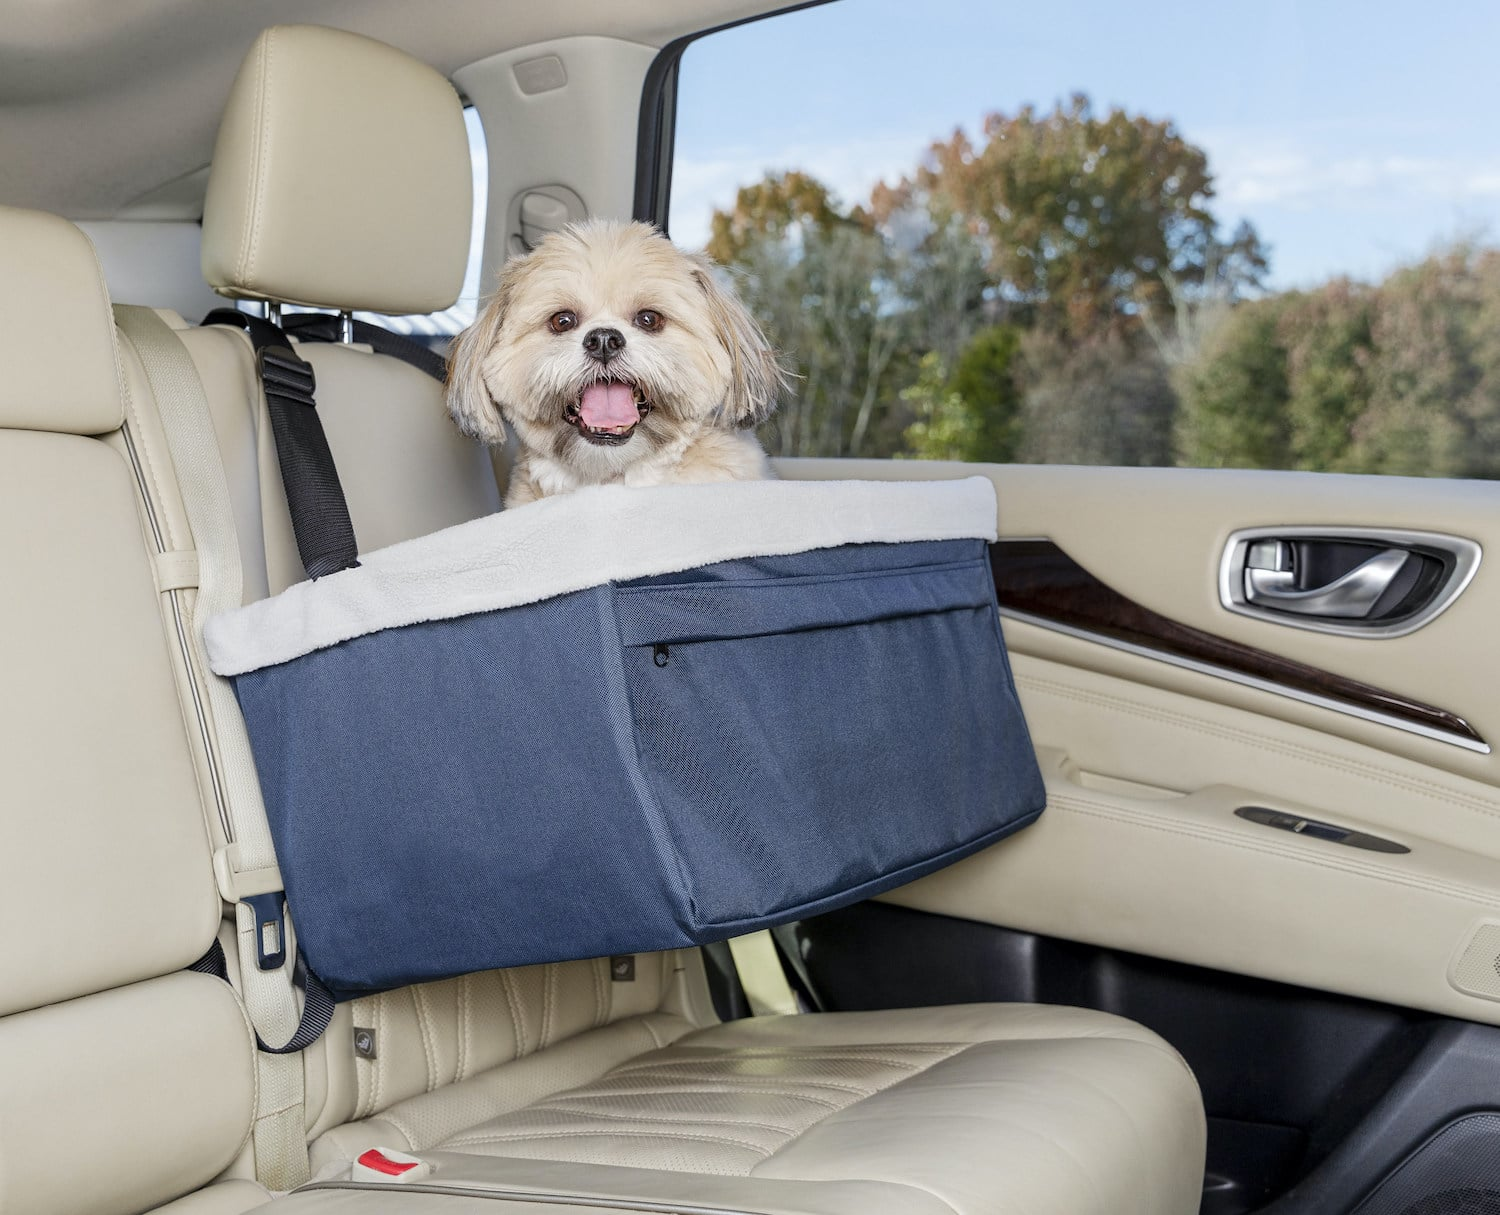 Company adds new pet products in new colors to 'blend perfectly' with modern car and home designs